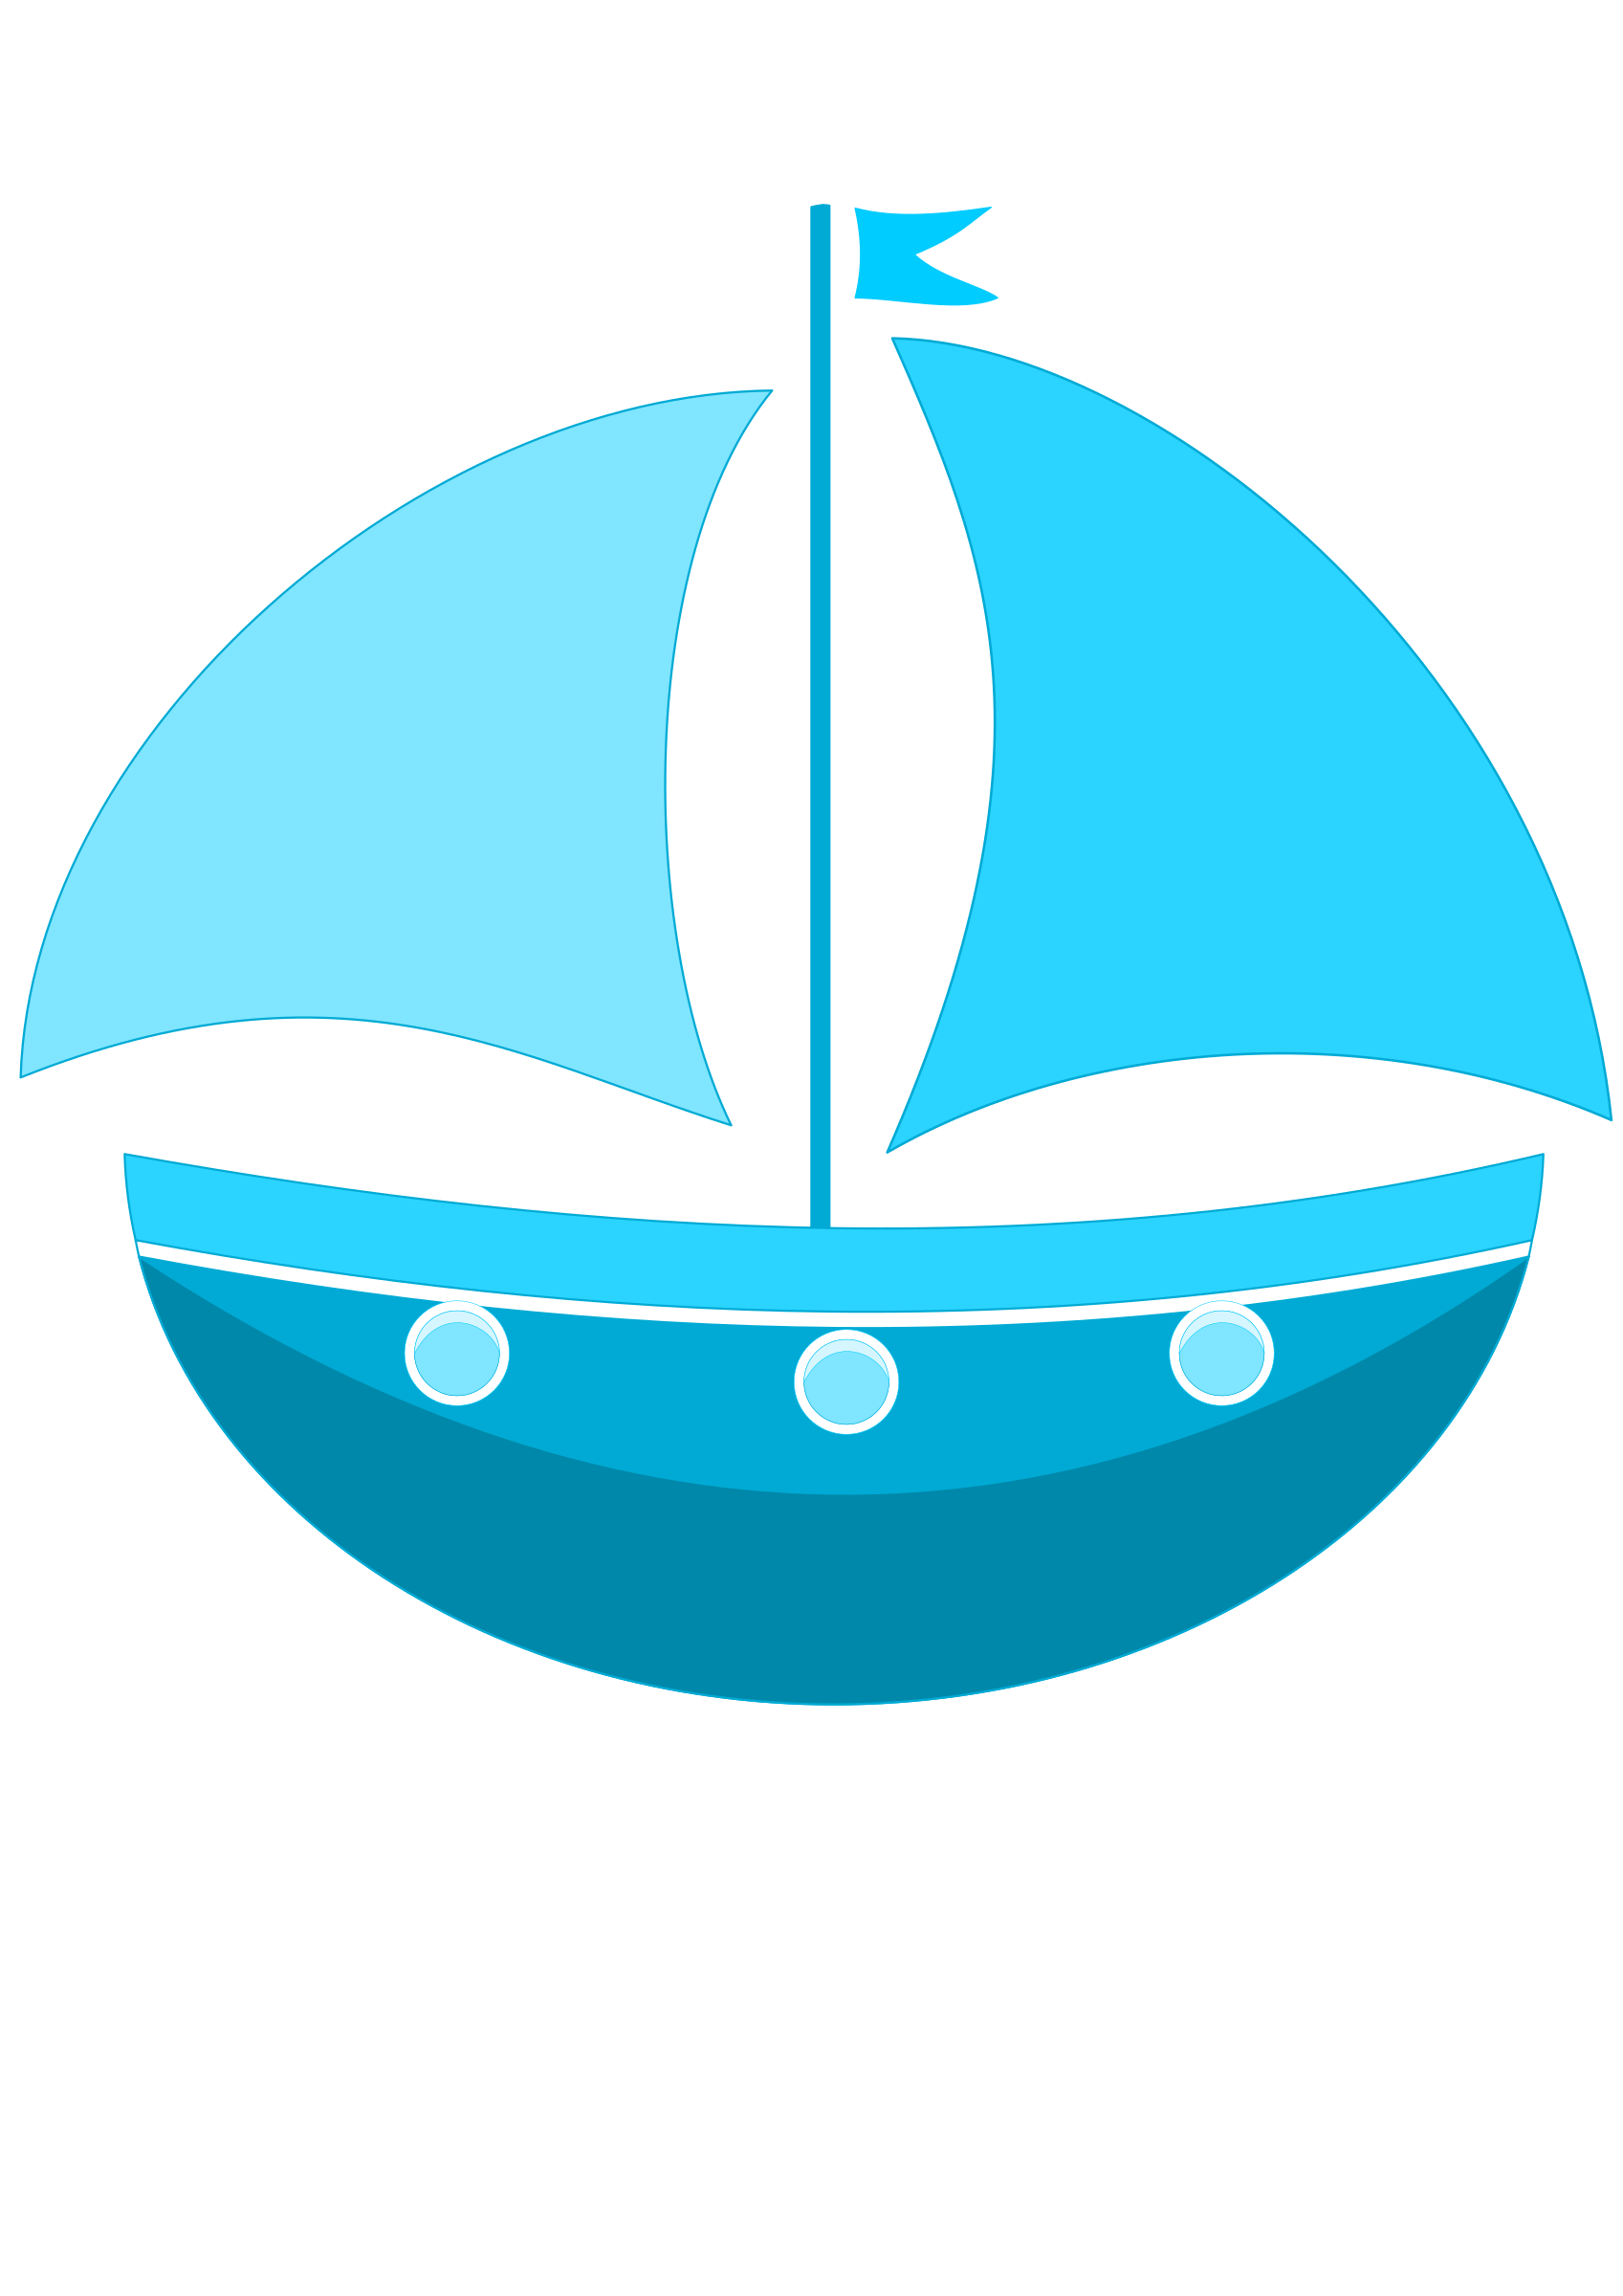 Cartoon Ship Vector Clipart. Graphic by Susa - Acqua Boat Vector PNG